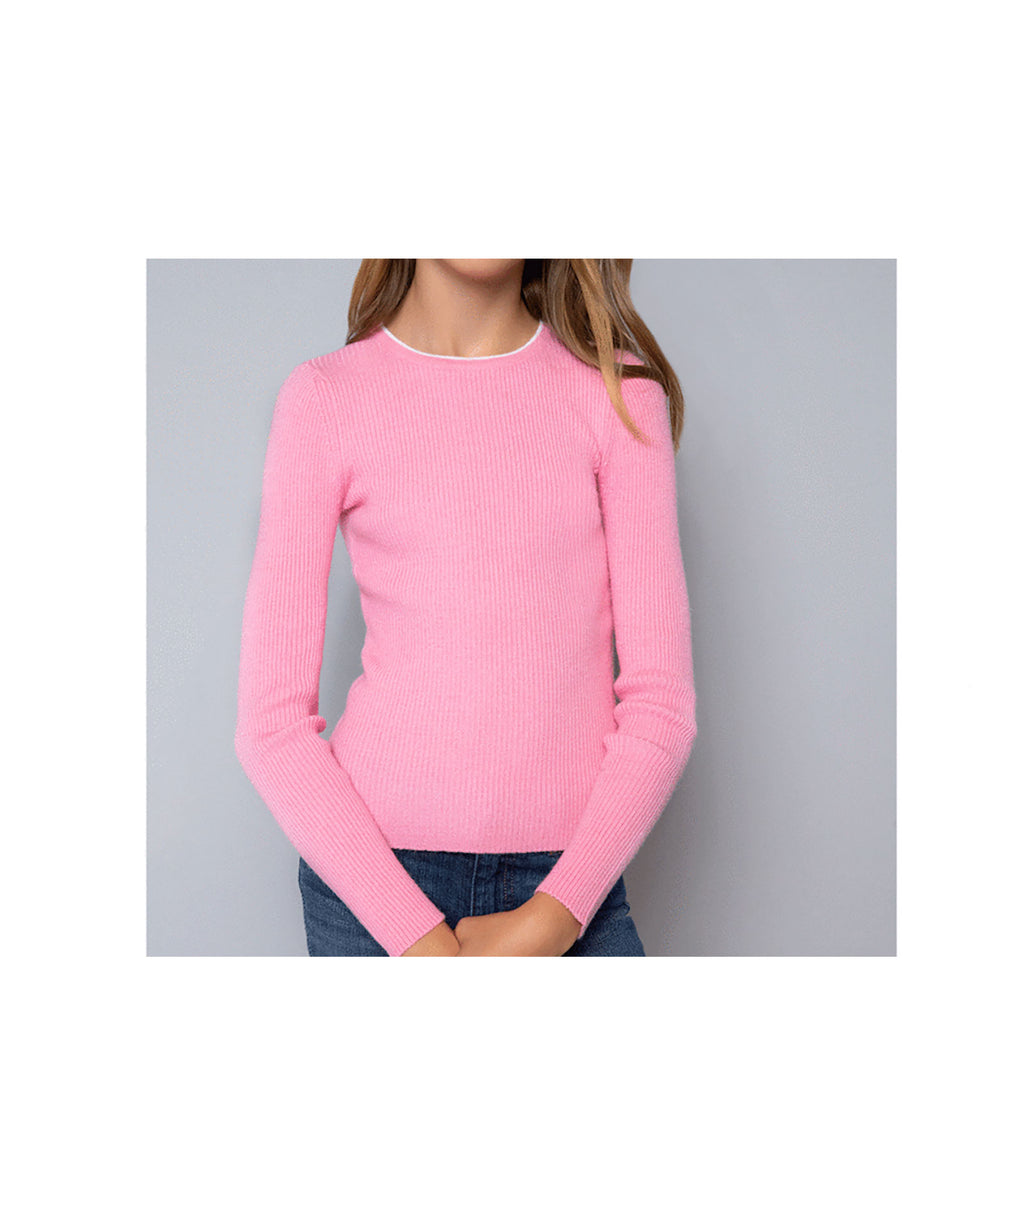 Me.n.u Girls Pink Rib Sweater